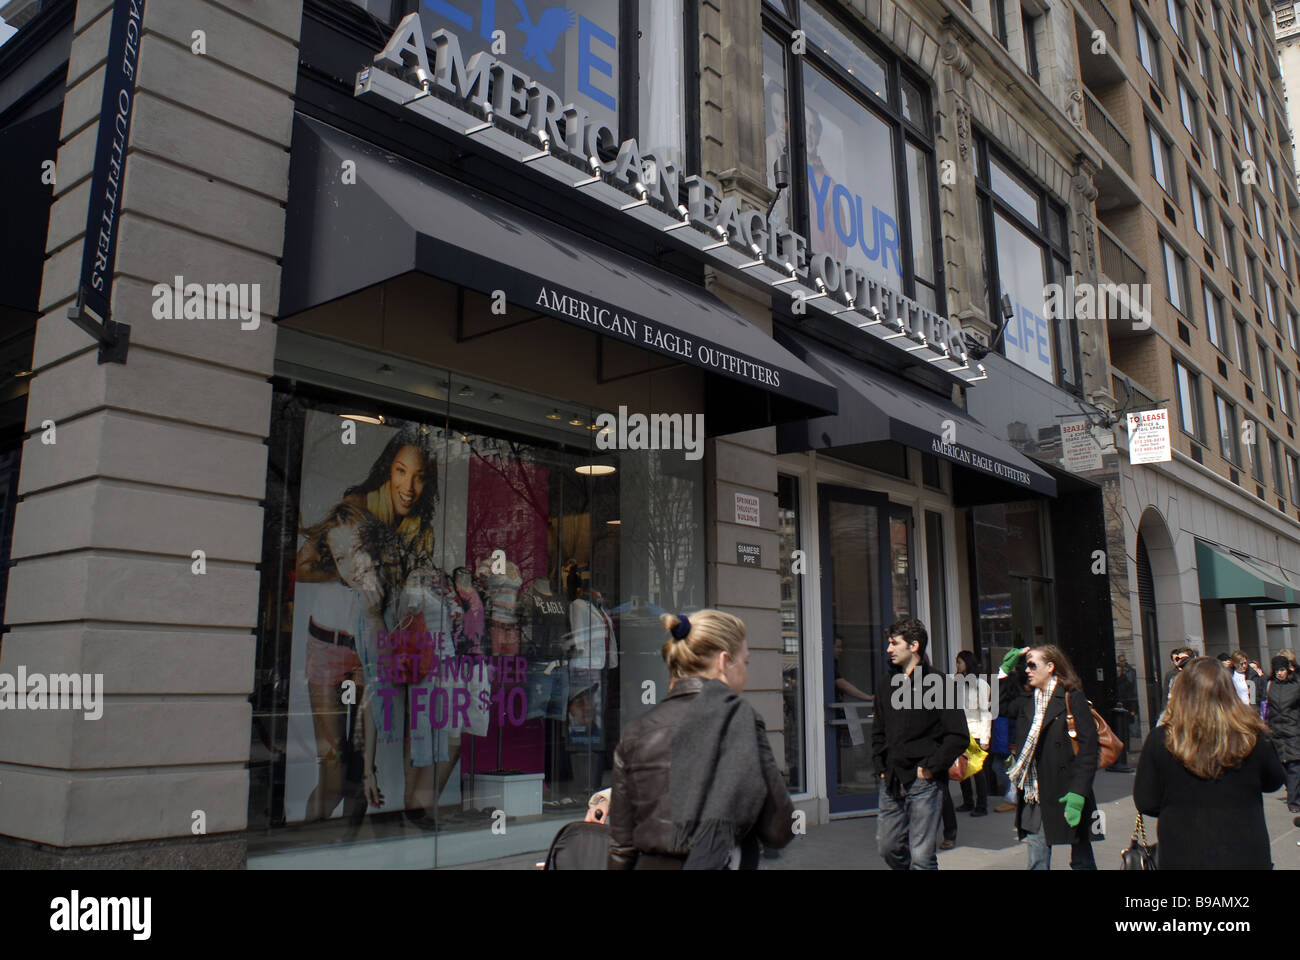 afab533d82b An American Eagle Outfitters store in Union Square in New York - Stock Image